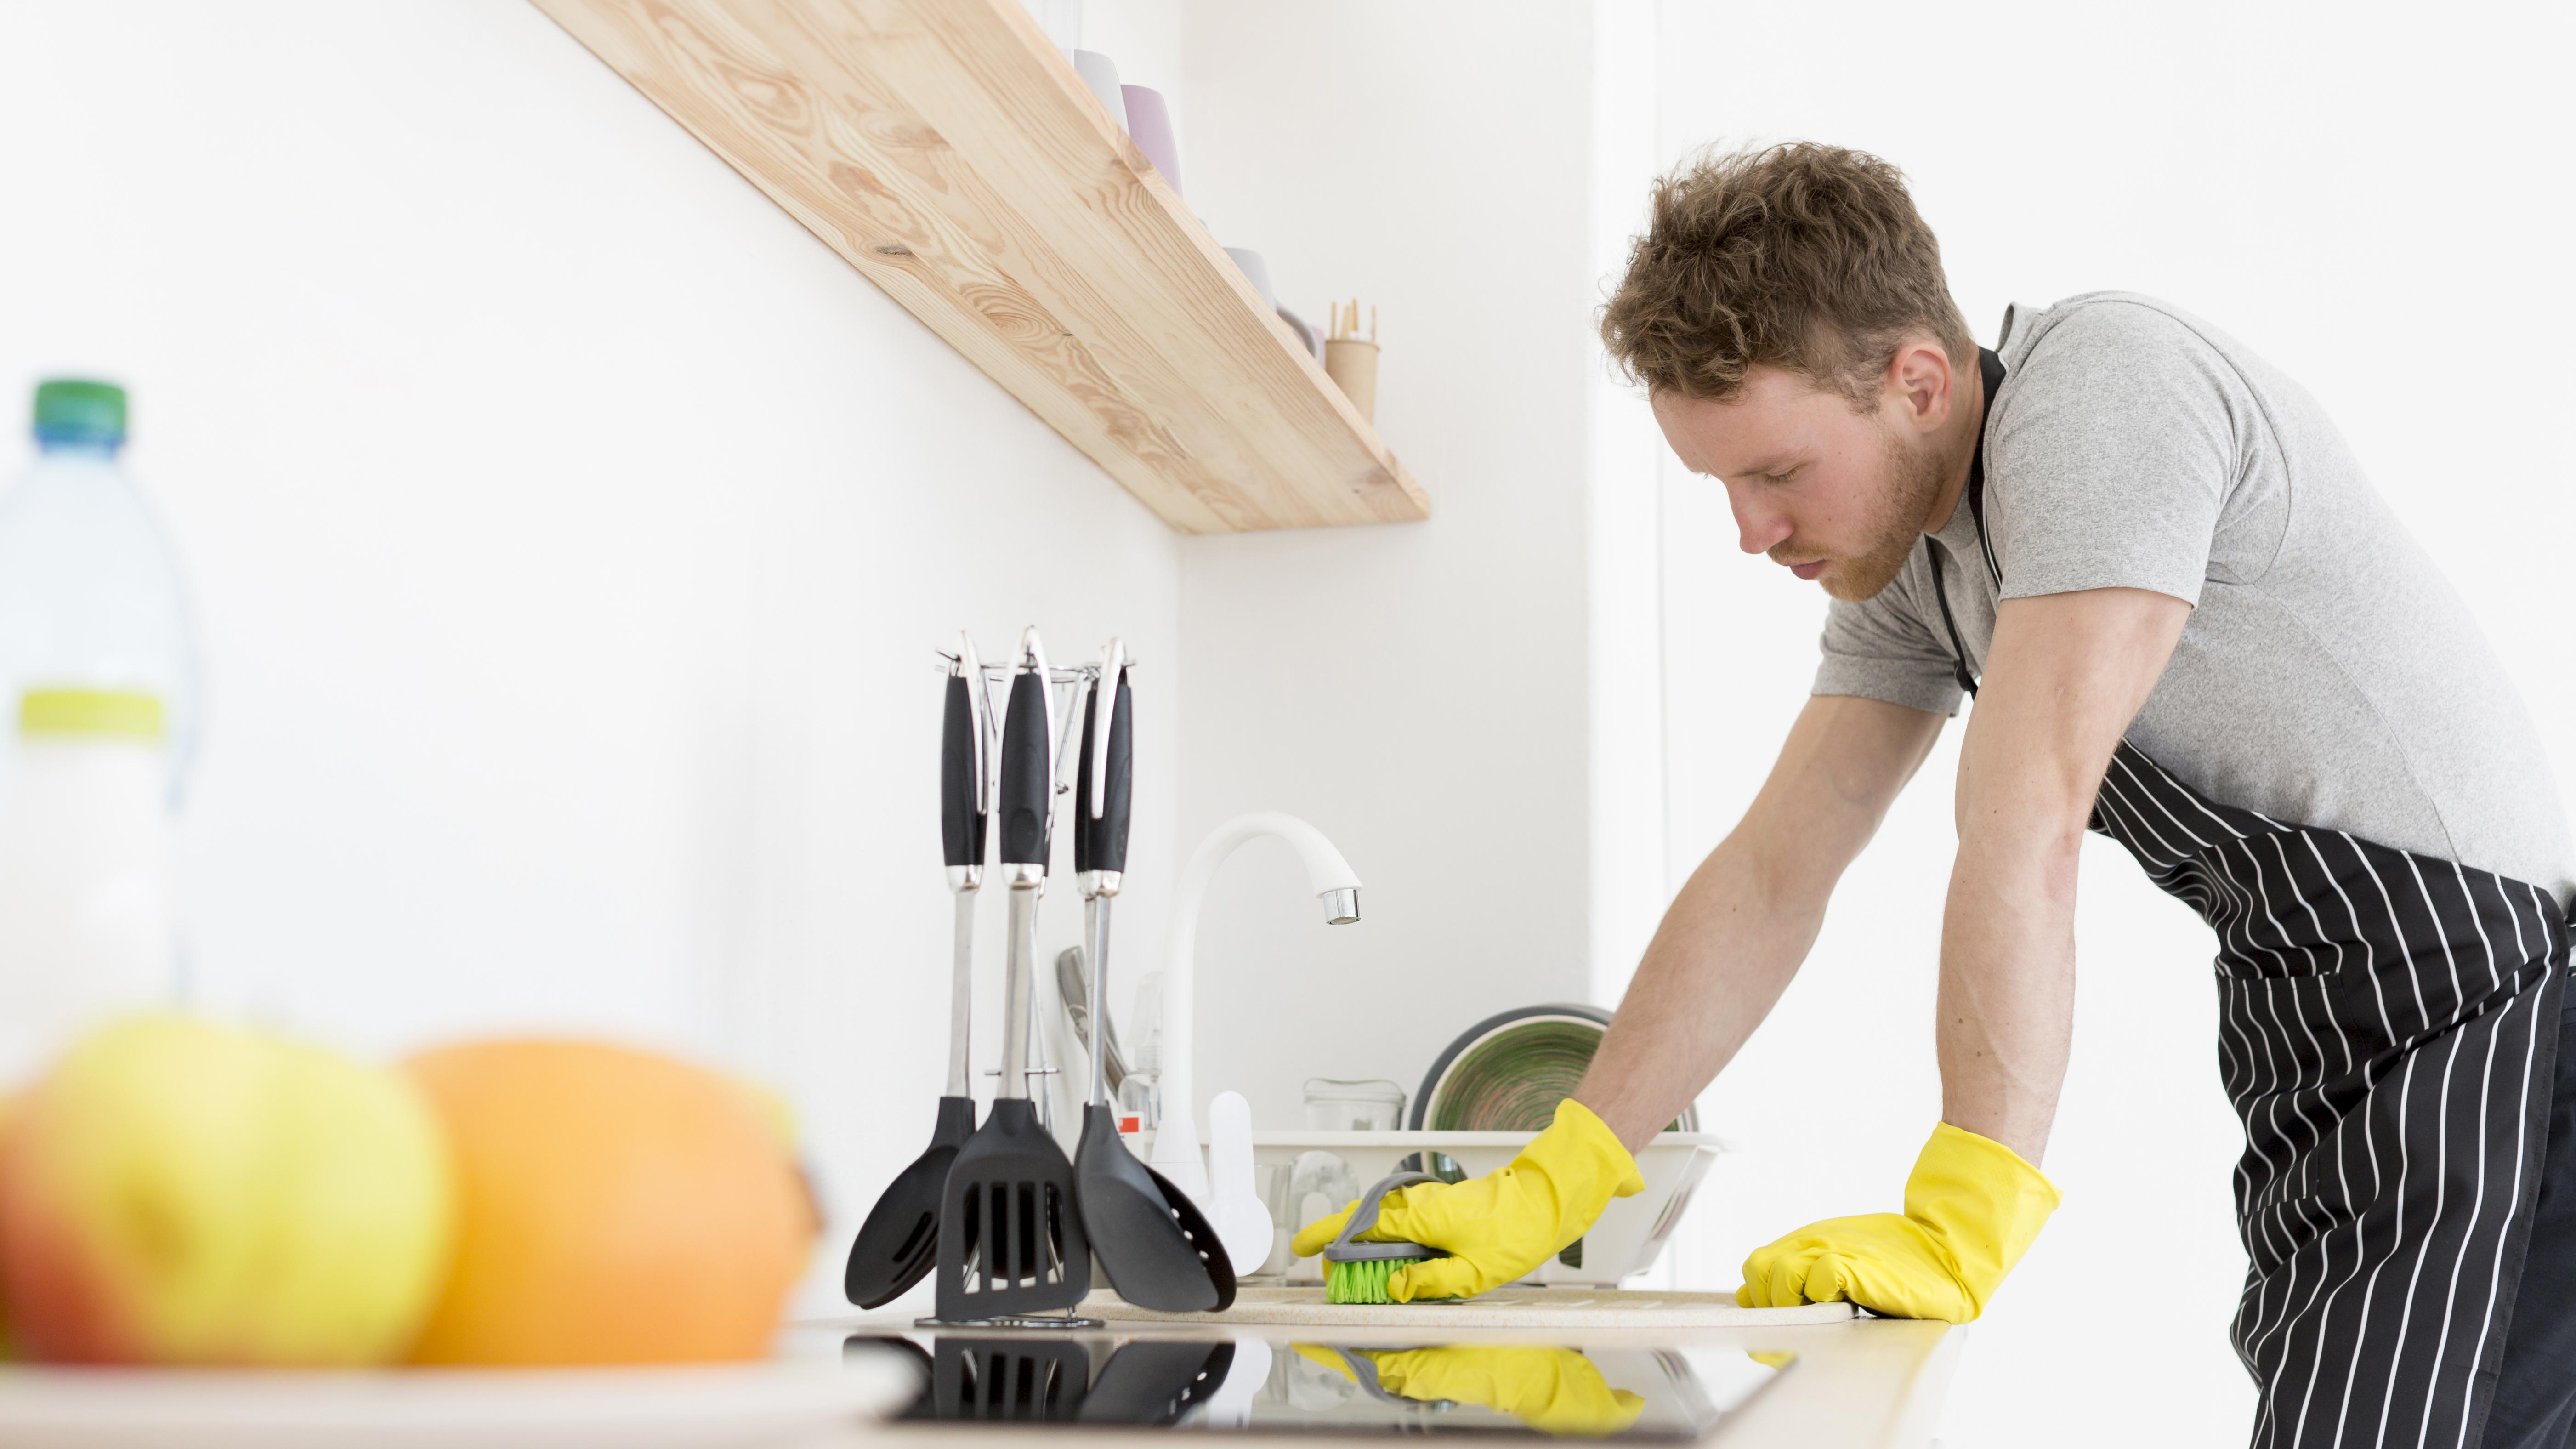 Man professional kitchen cleaning